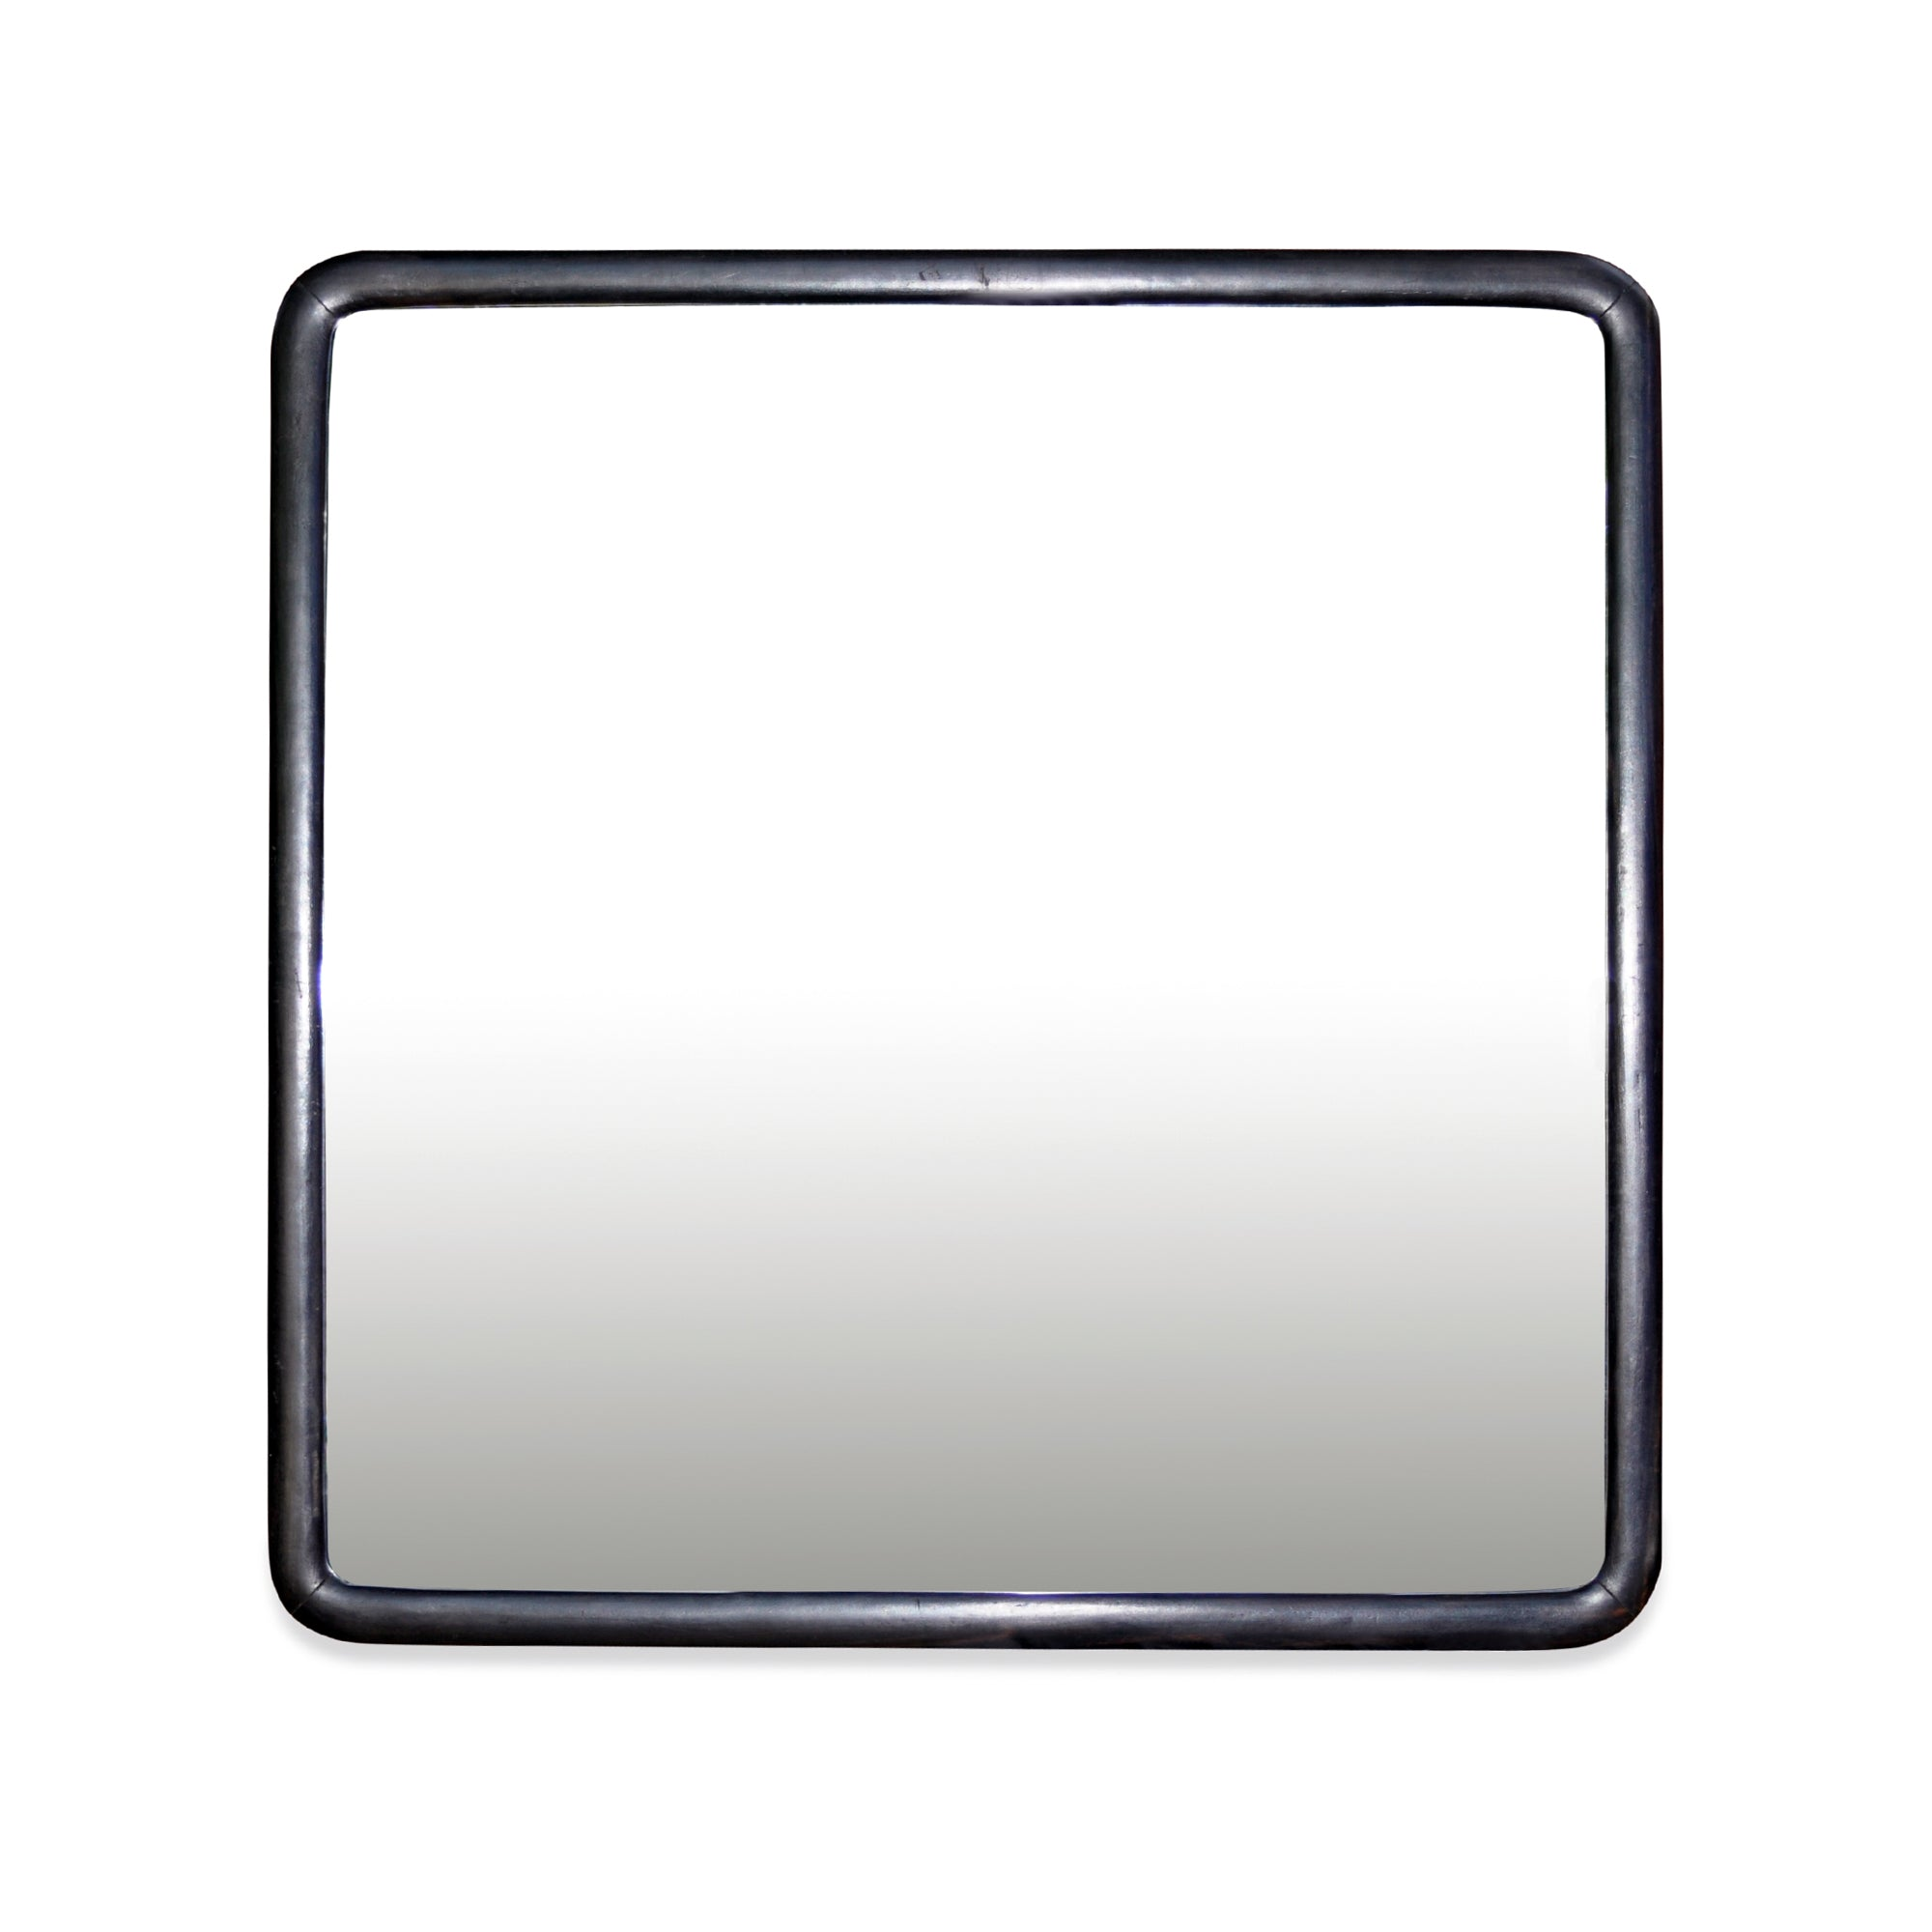 Pair of Japanese Square Black Mirrors